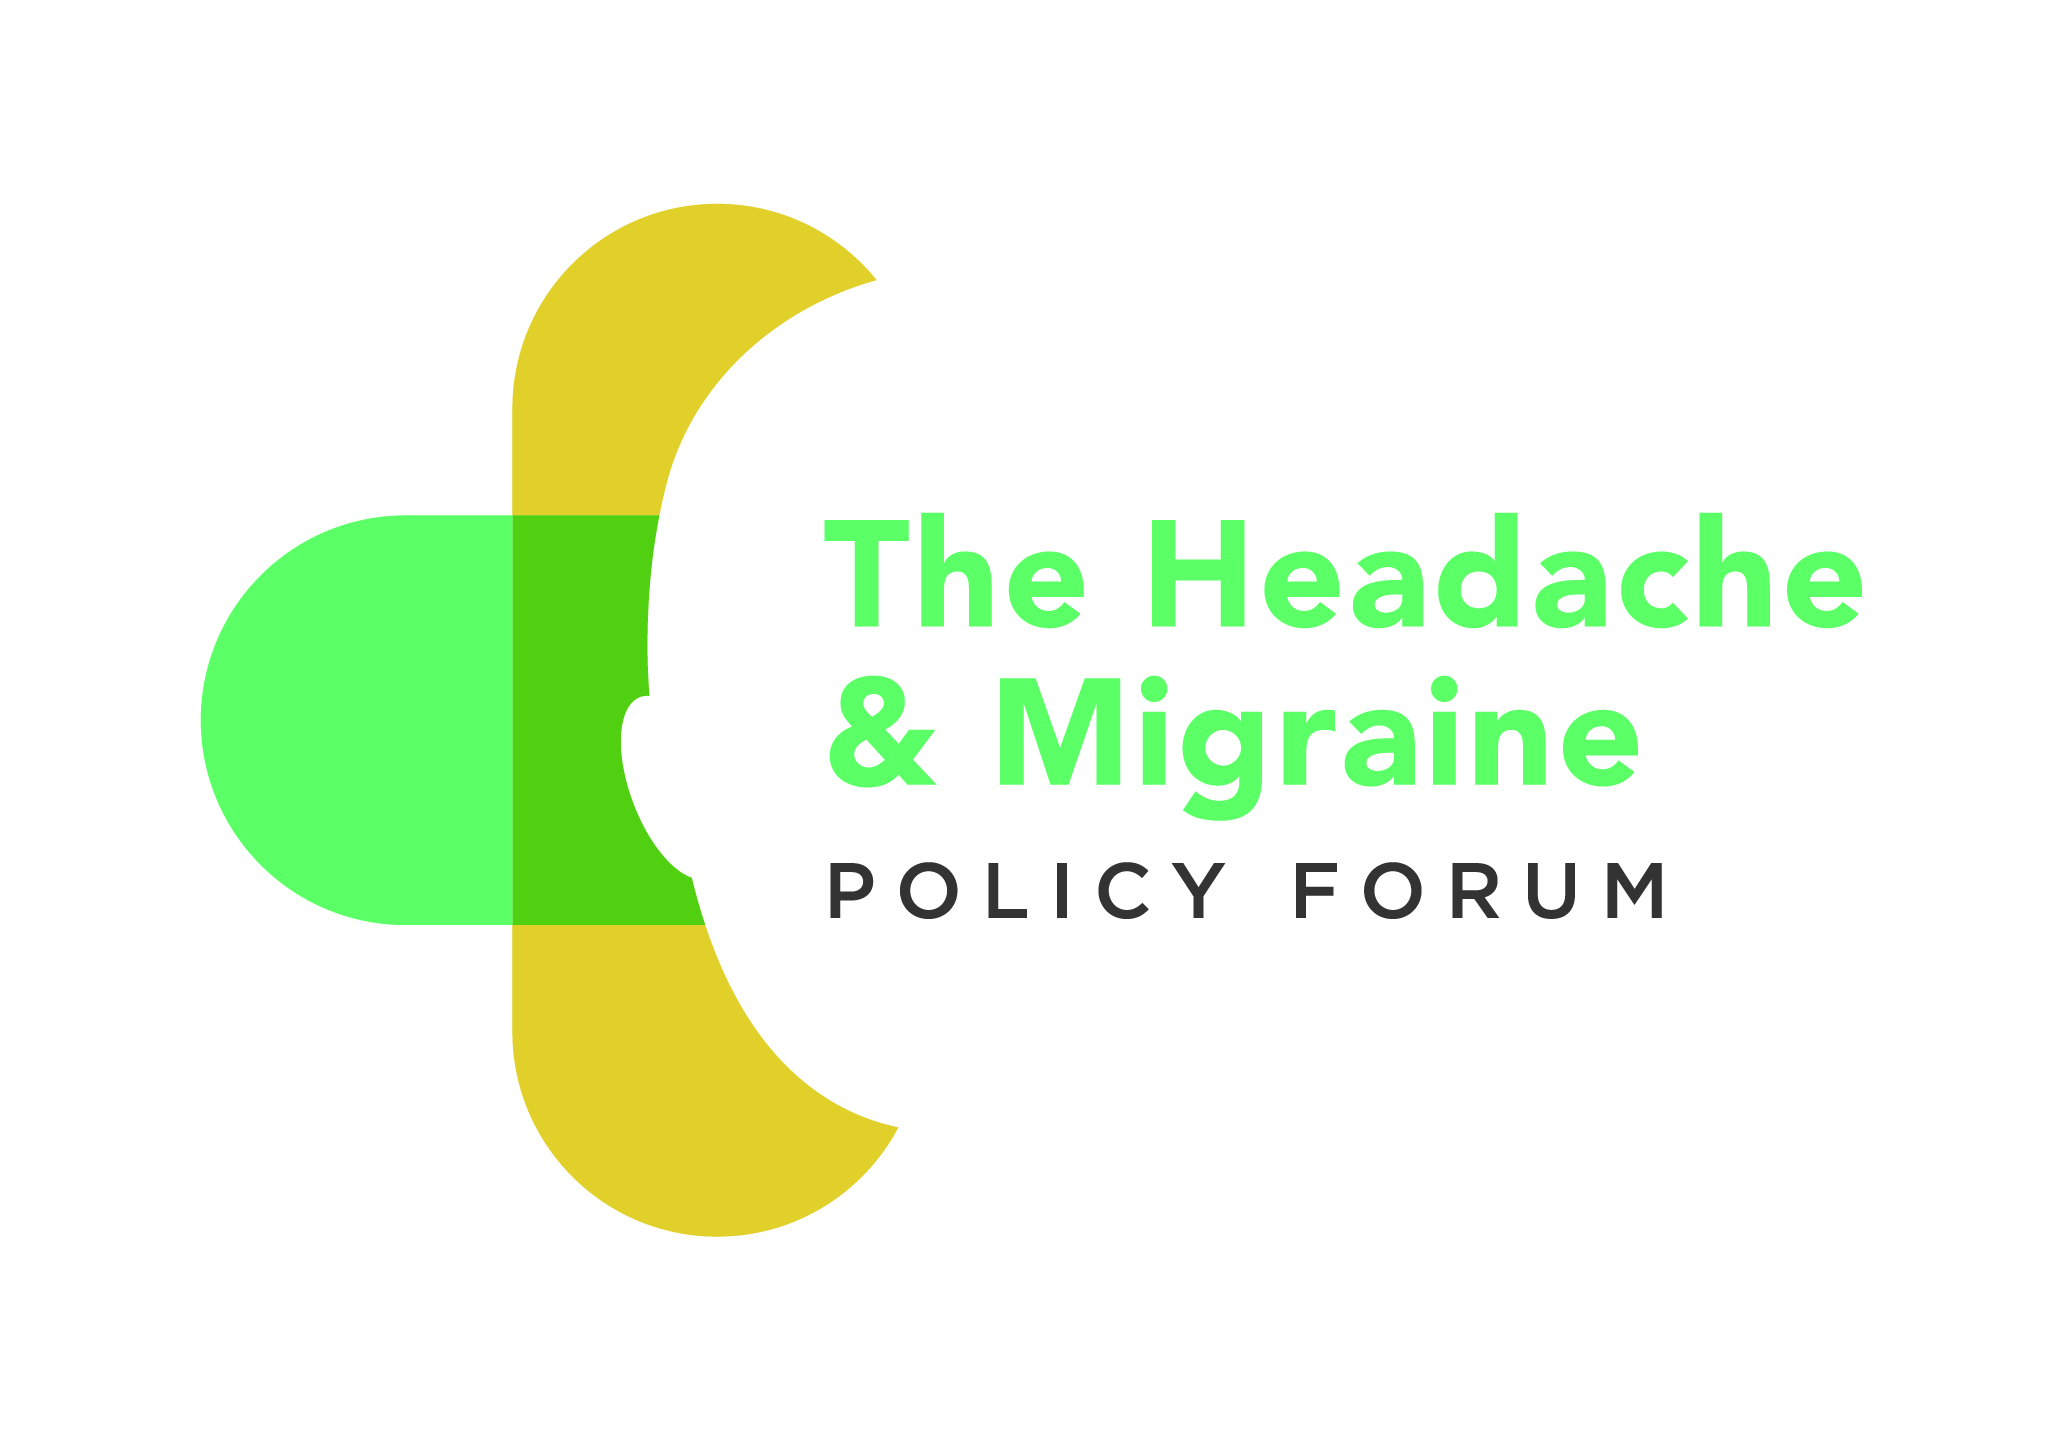 The Headache and Migraine Policy Forum